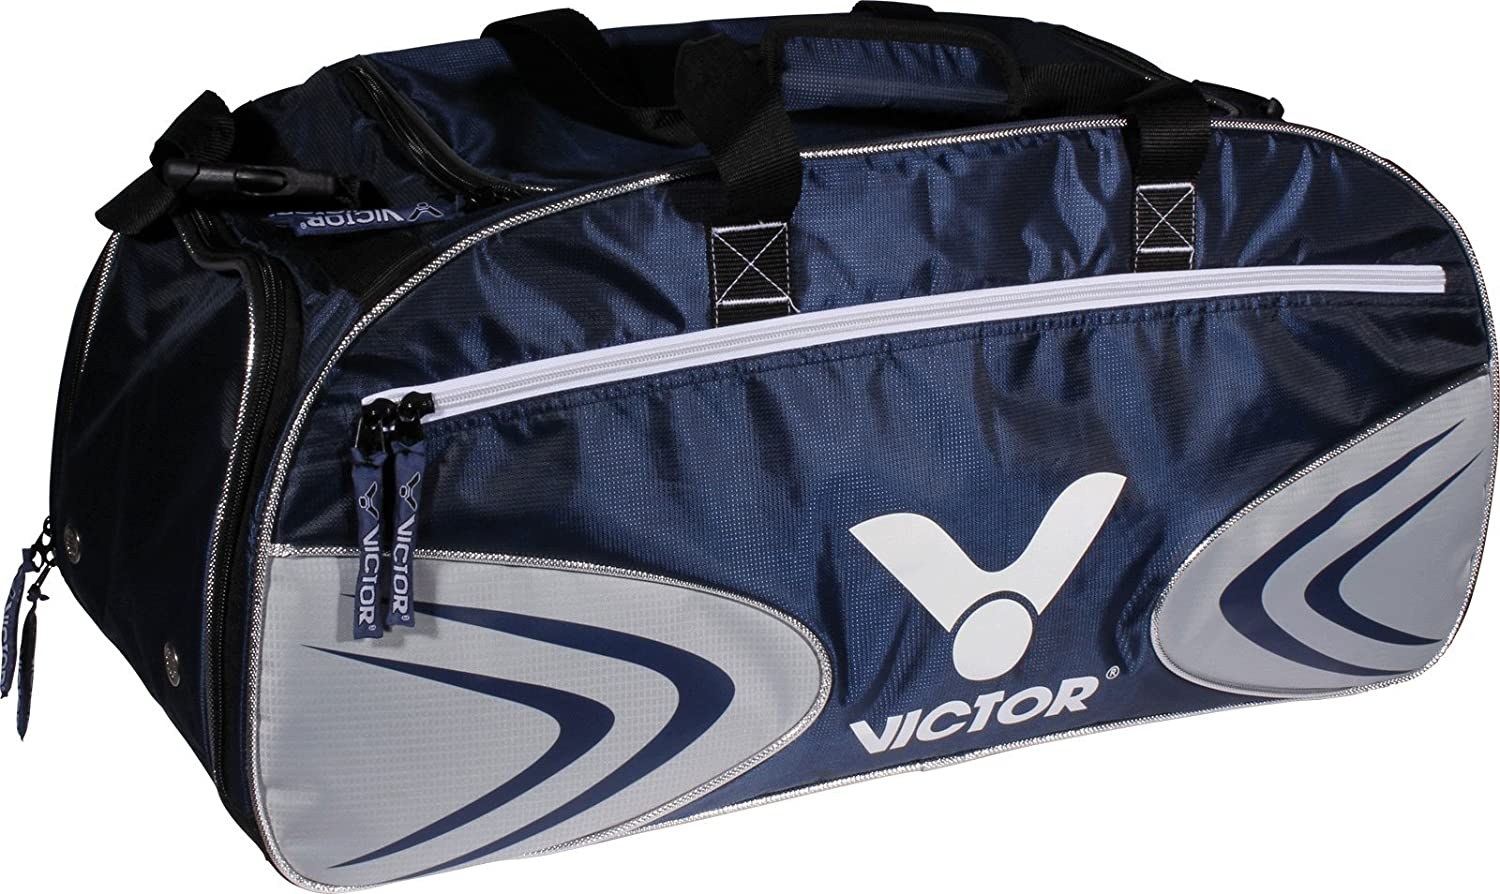 Blue Victor Vicor Doublethermobag Limited Badminton Tasche 76 x 33 x 26 cm